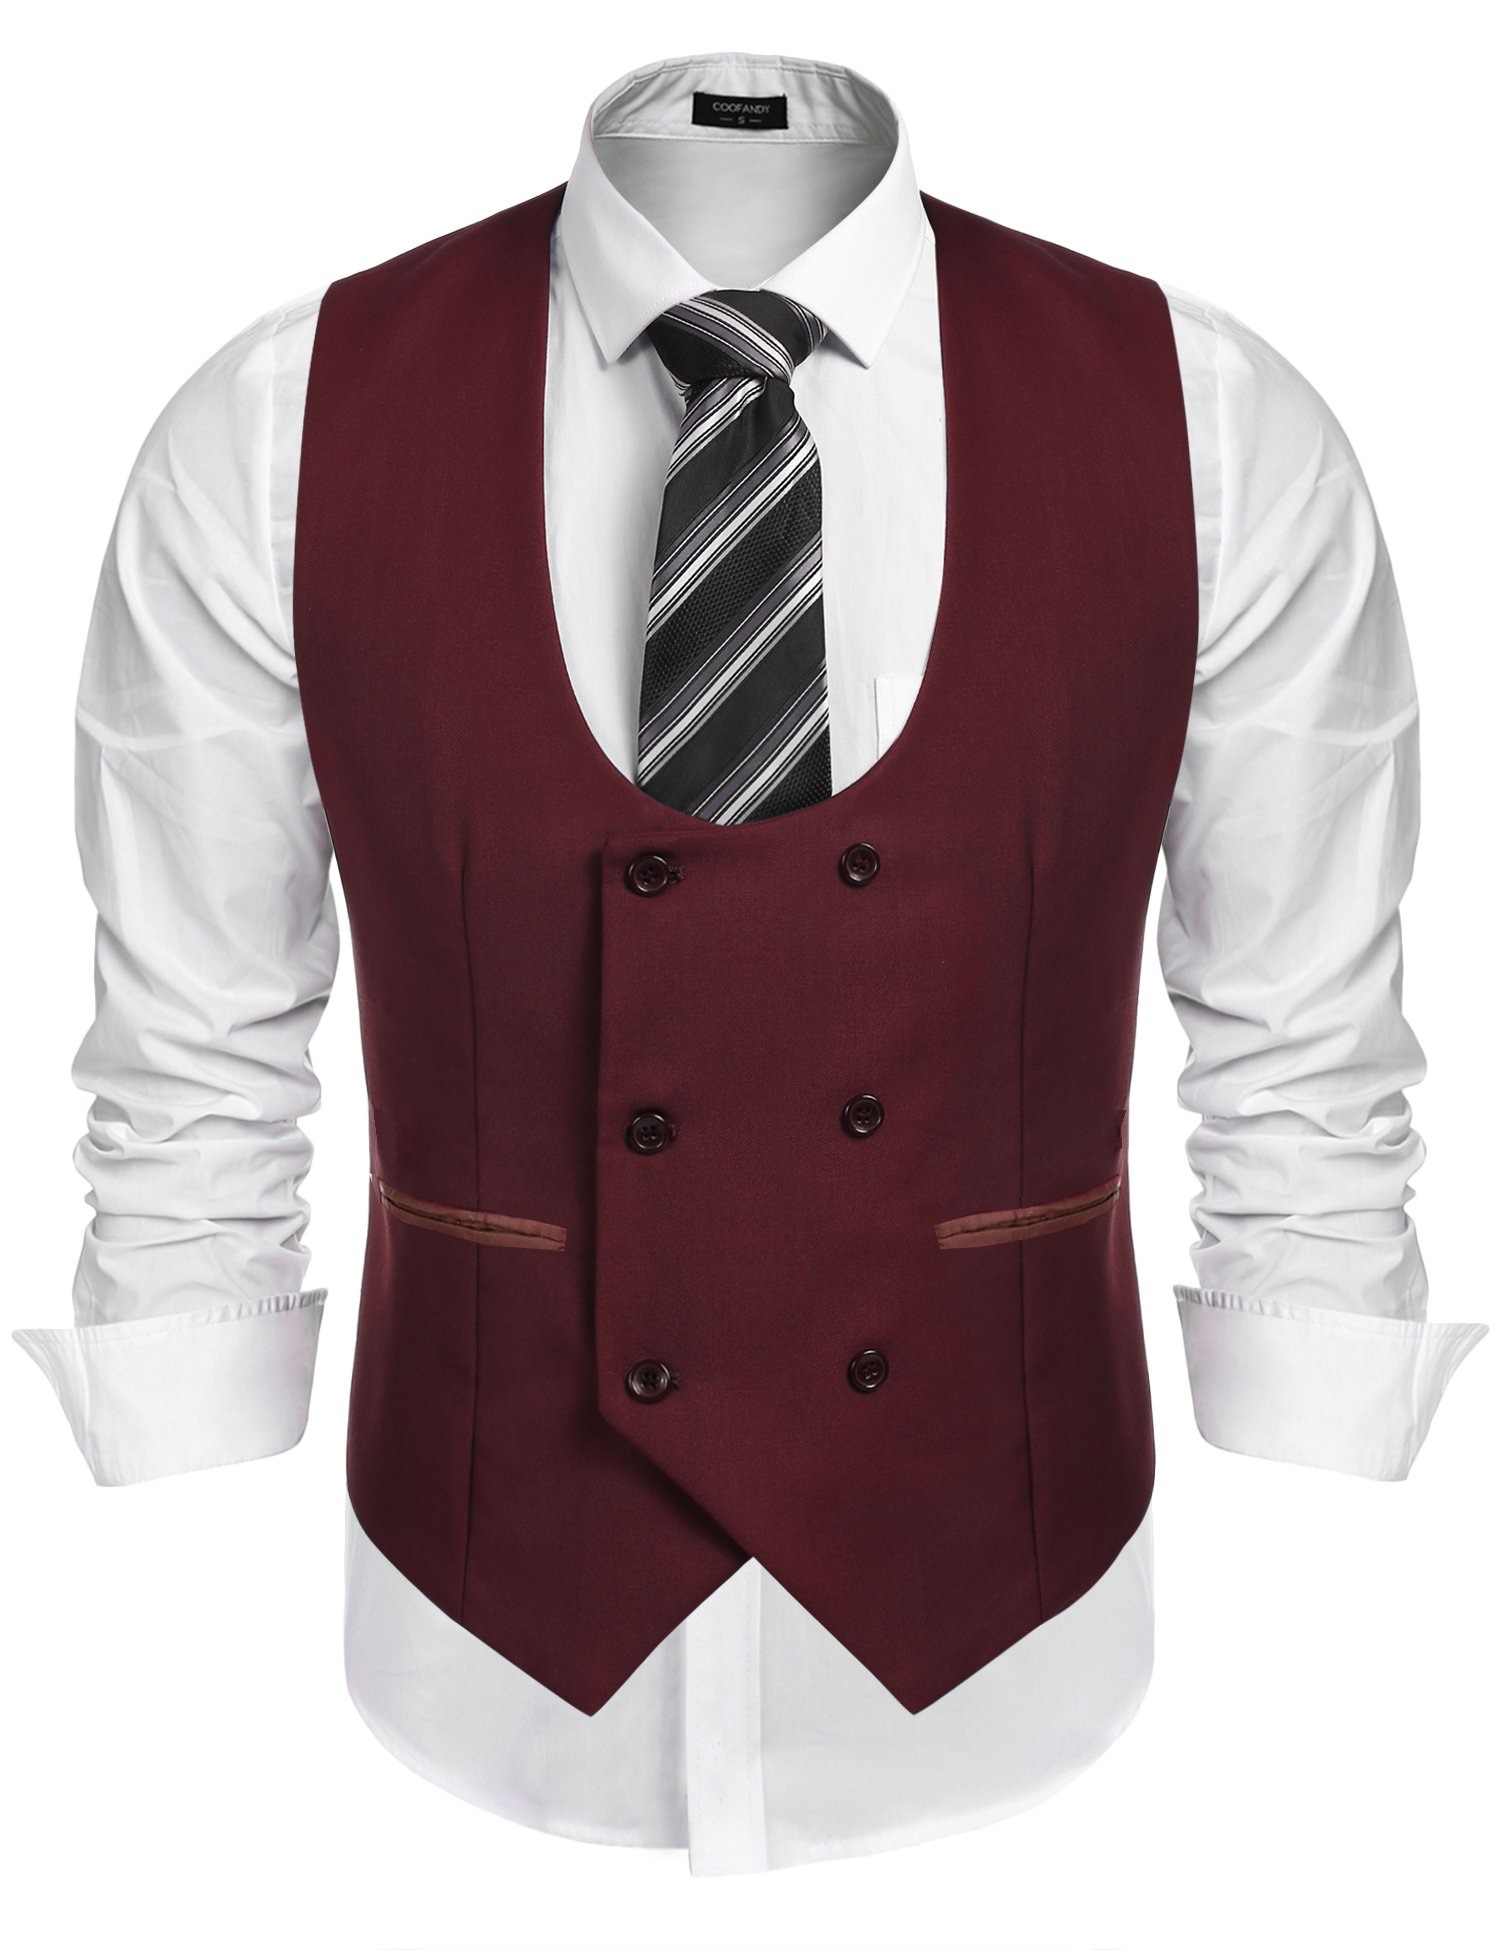 COOFANDY Men's Slim Fit Dress Suits Double Breasted Solid Vest Waistcoat,Red,Medium